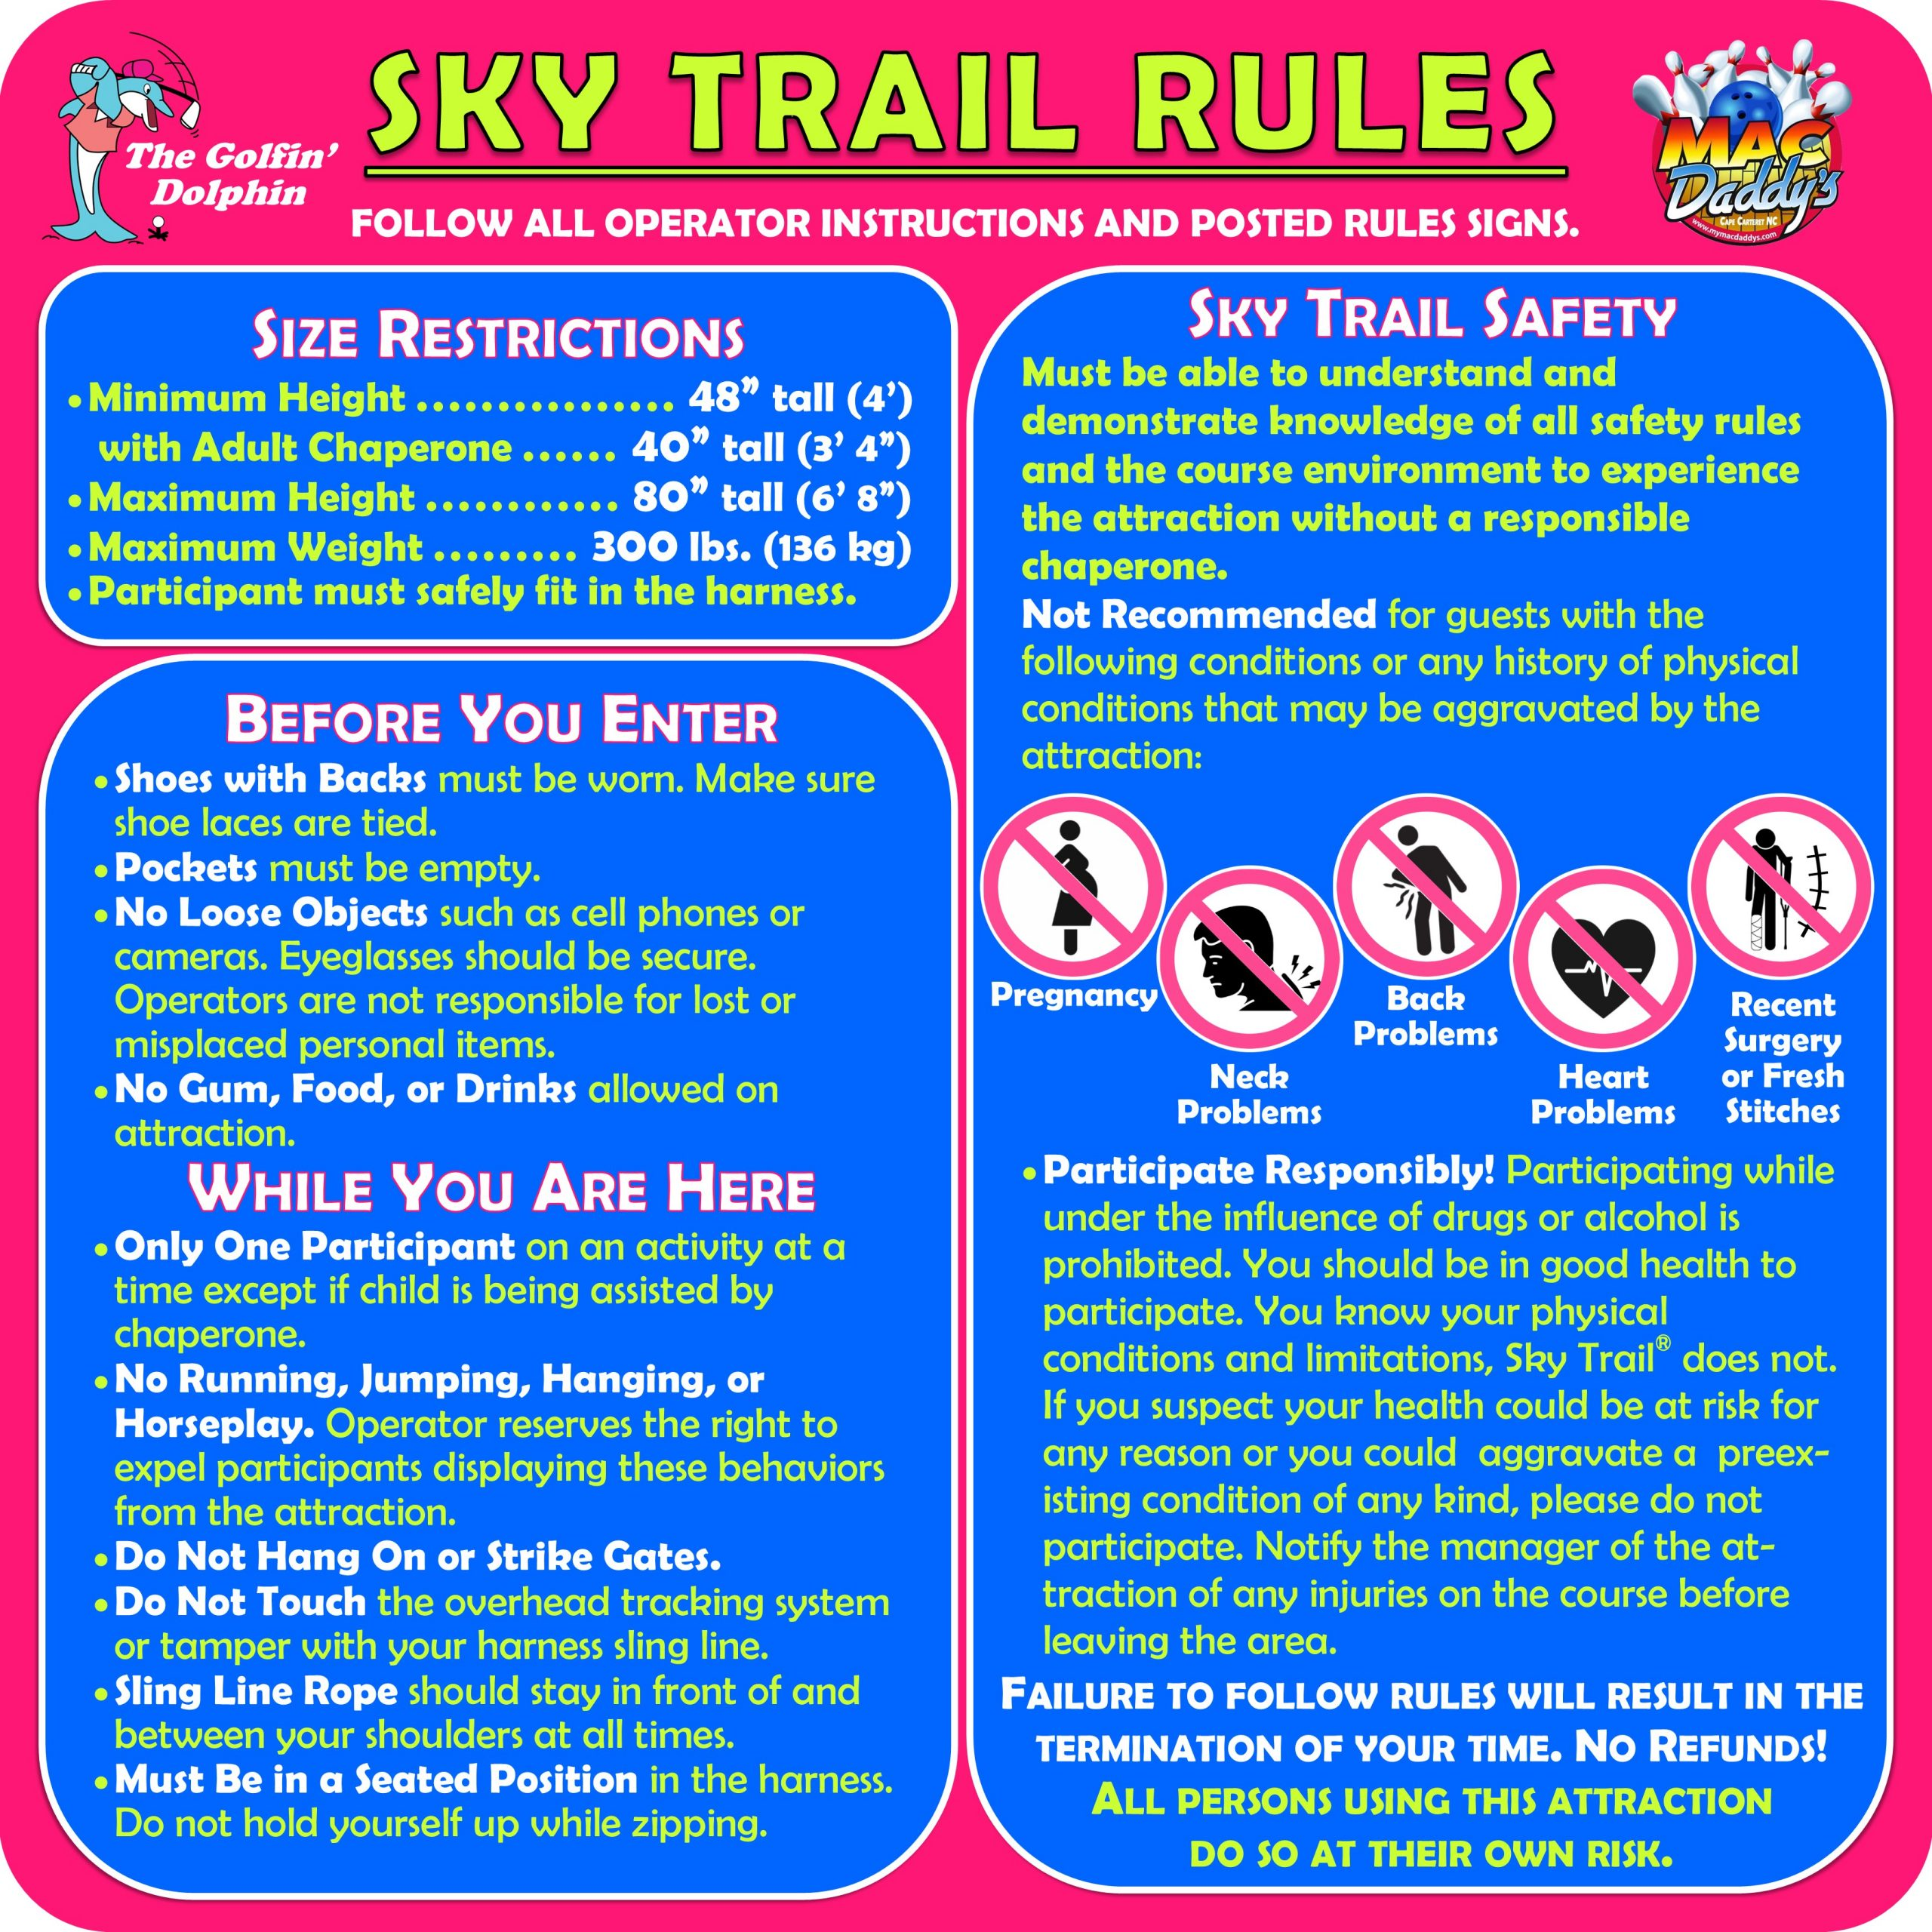 Sky Trail Rules